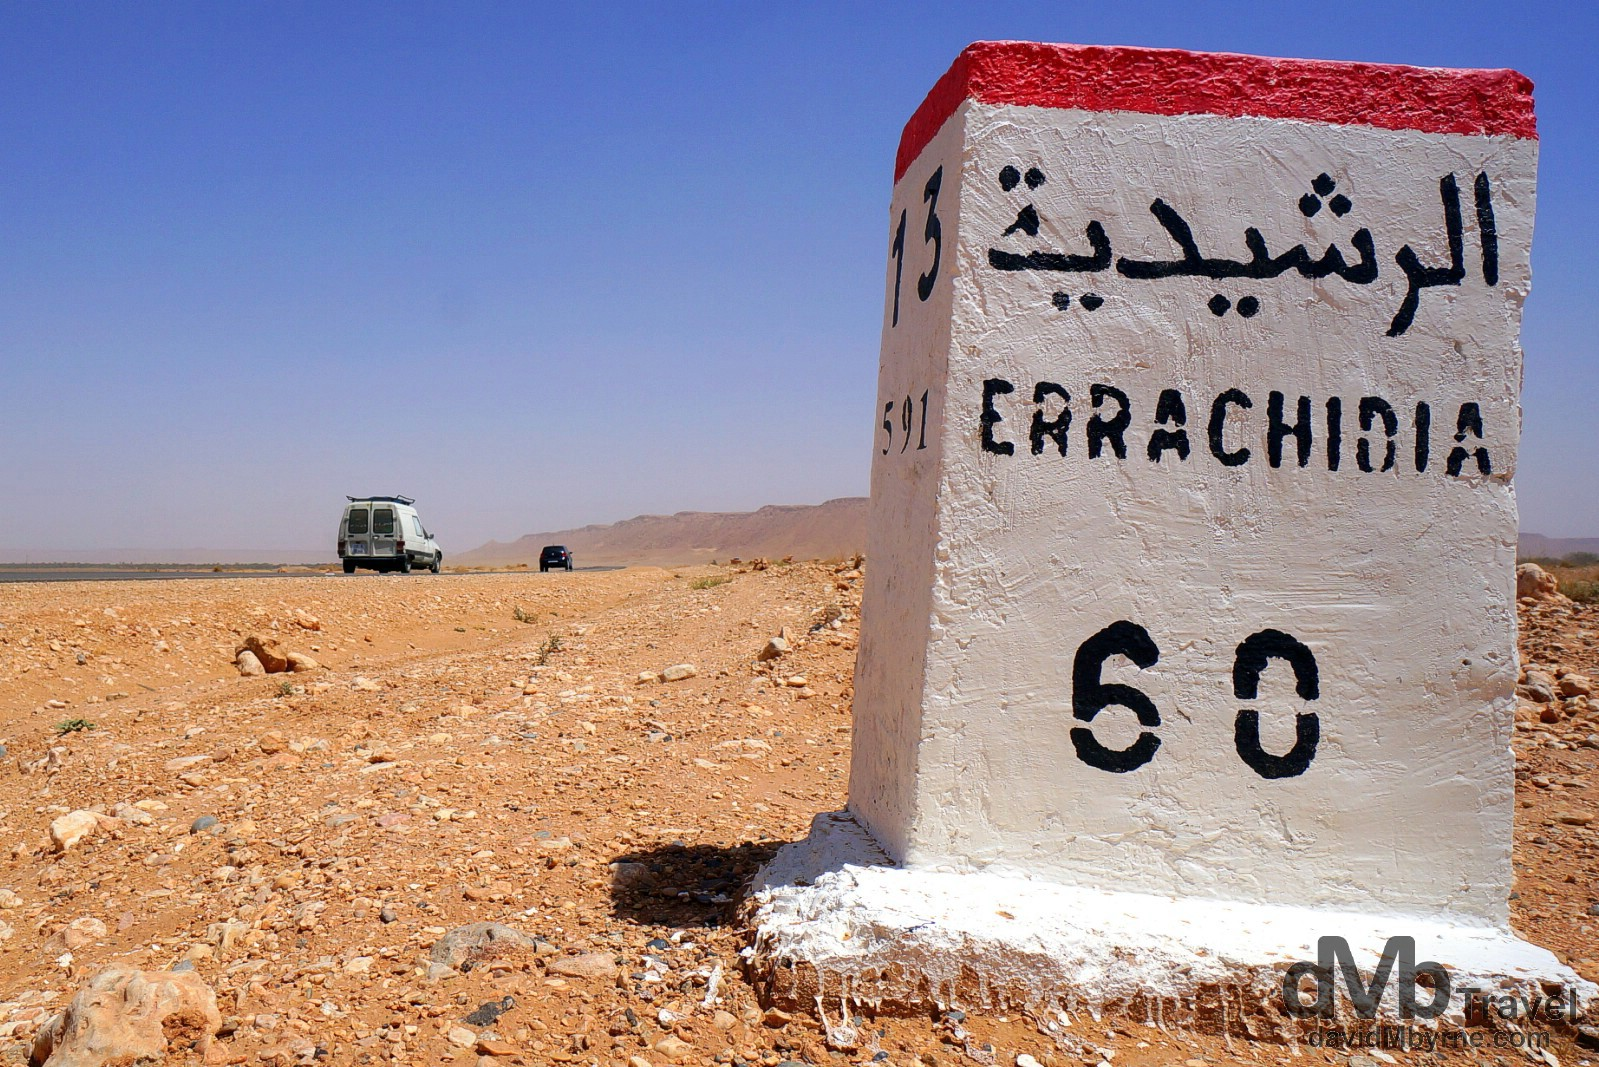 On the N13 en route from Merzouga to Er Rachidia, southern Morocco. May 22nd, 2014.